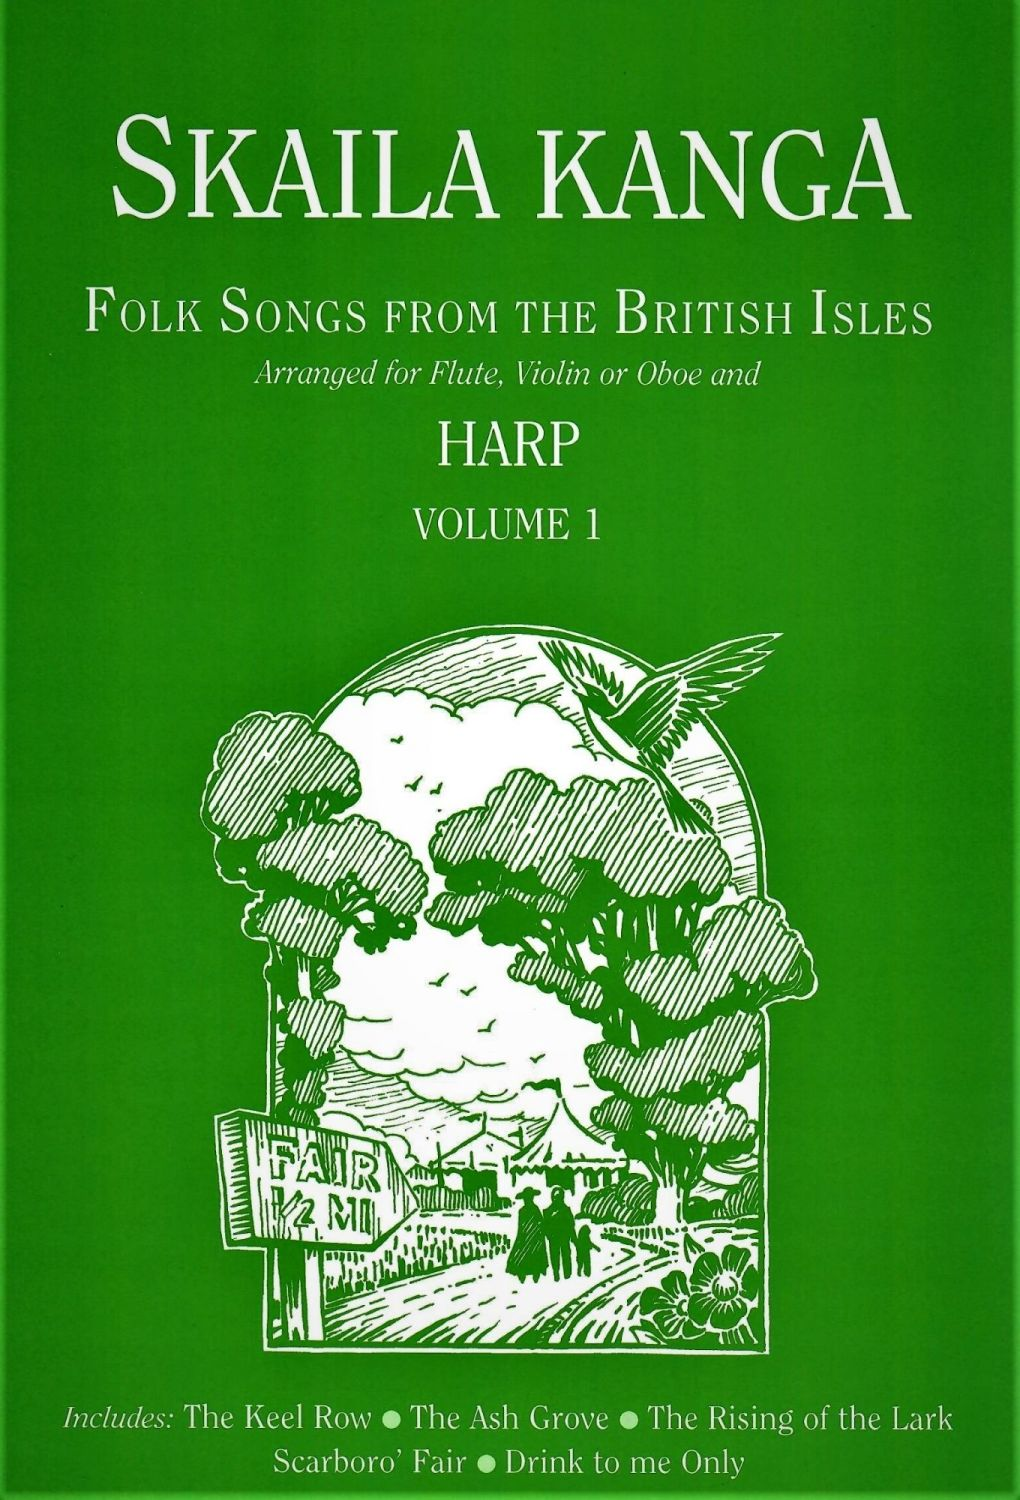 Folk Songs from the British Isles - Skaila Kanga